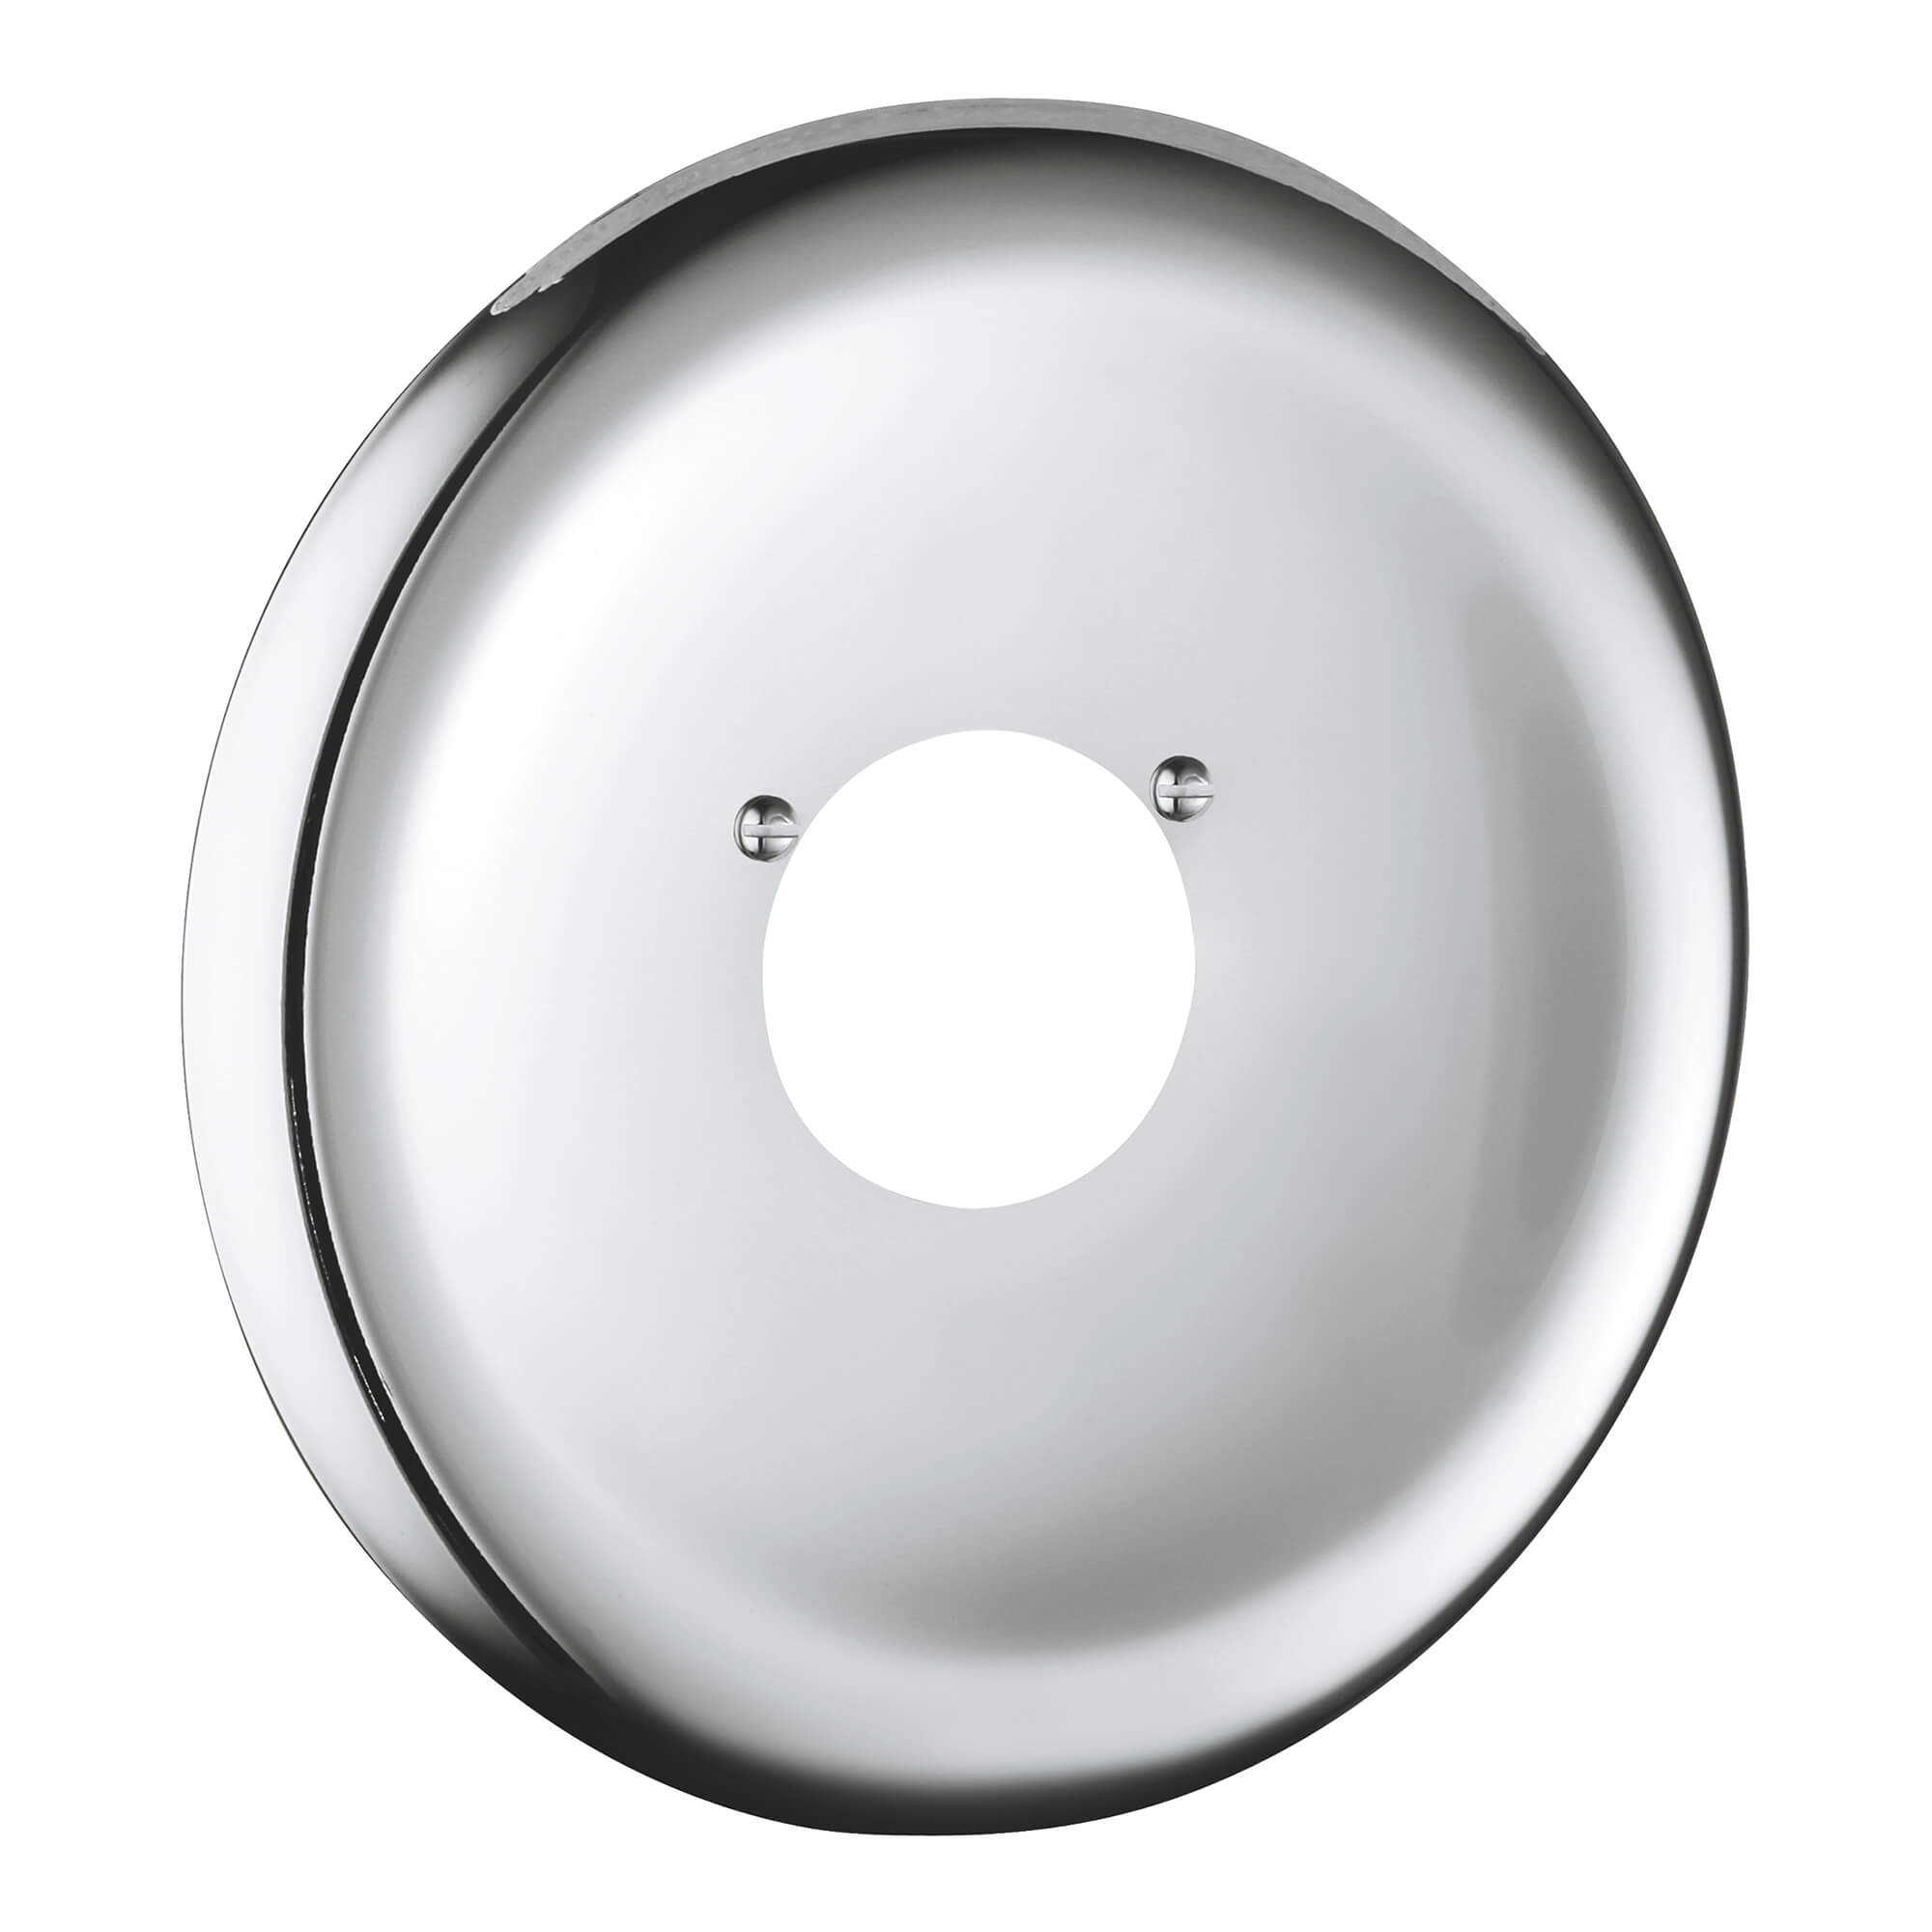 Escutcheon 6 3 4 Inch From 1979 GROHE CHROME